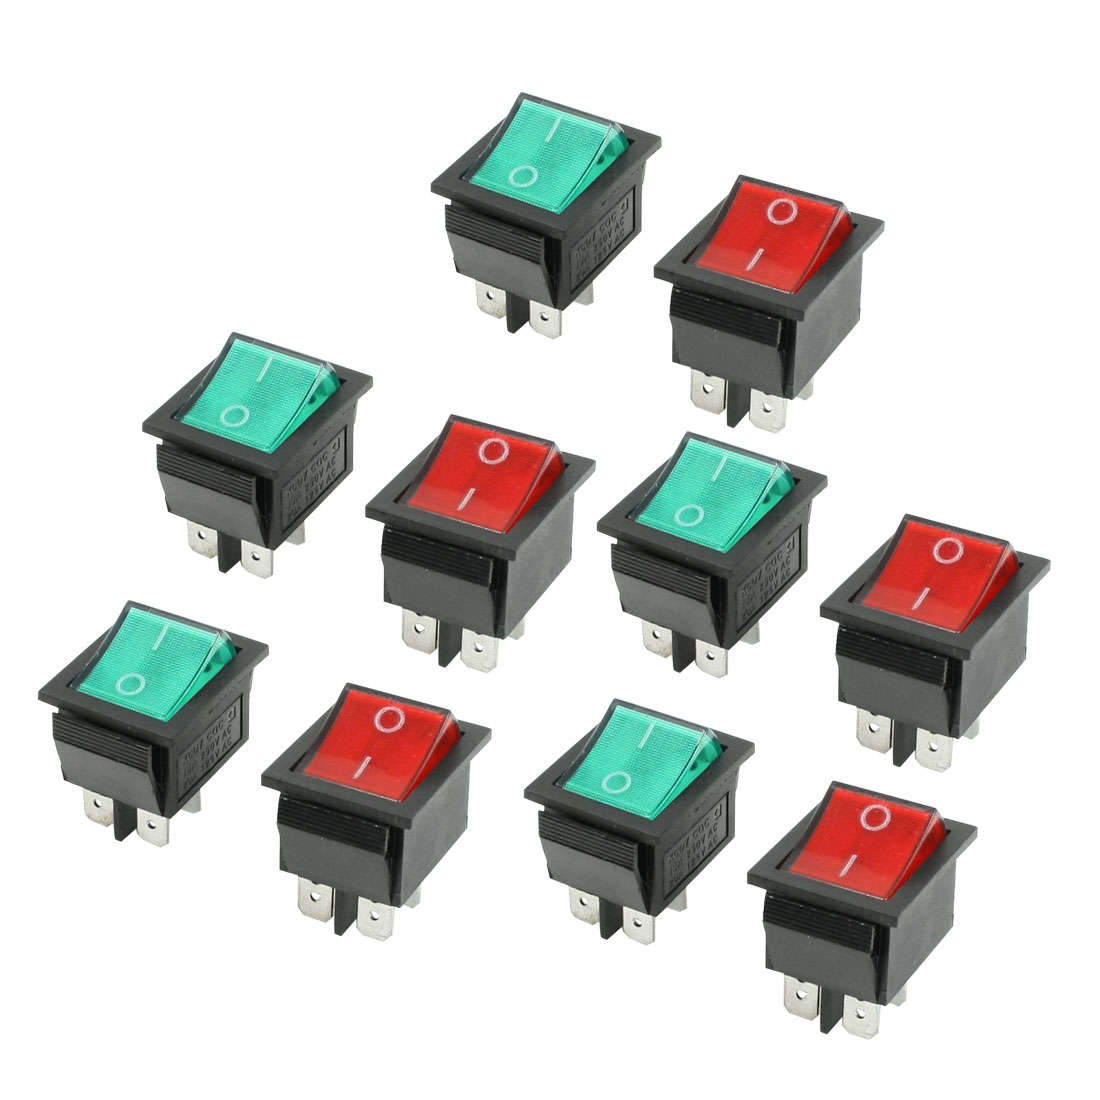 10 Pcs Red Green Illuminated Lamp On/Off Boat Rocker Switch AC 10A 250V/20A 125V